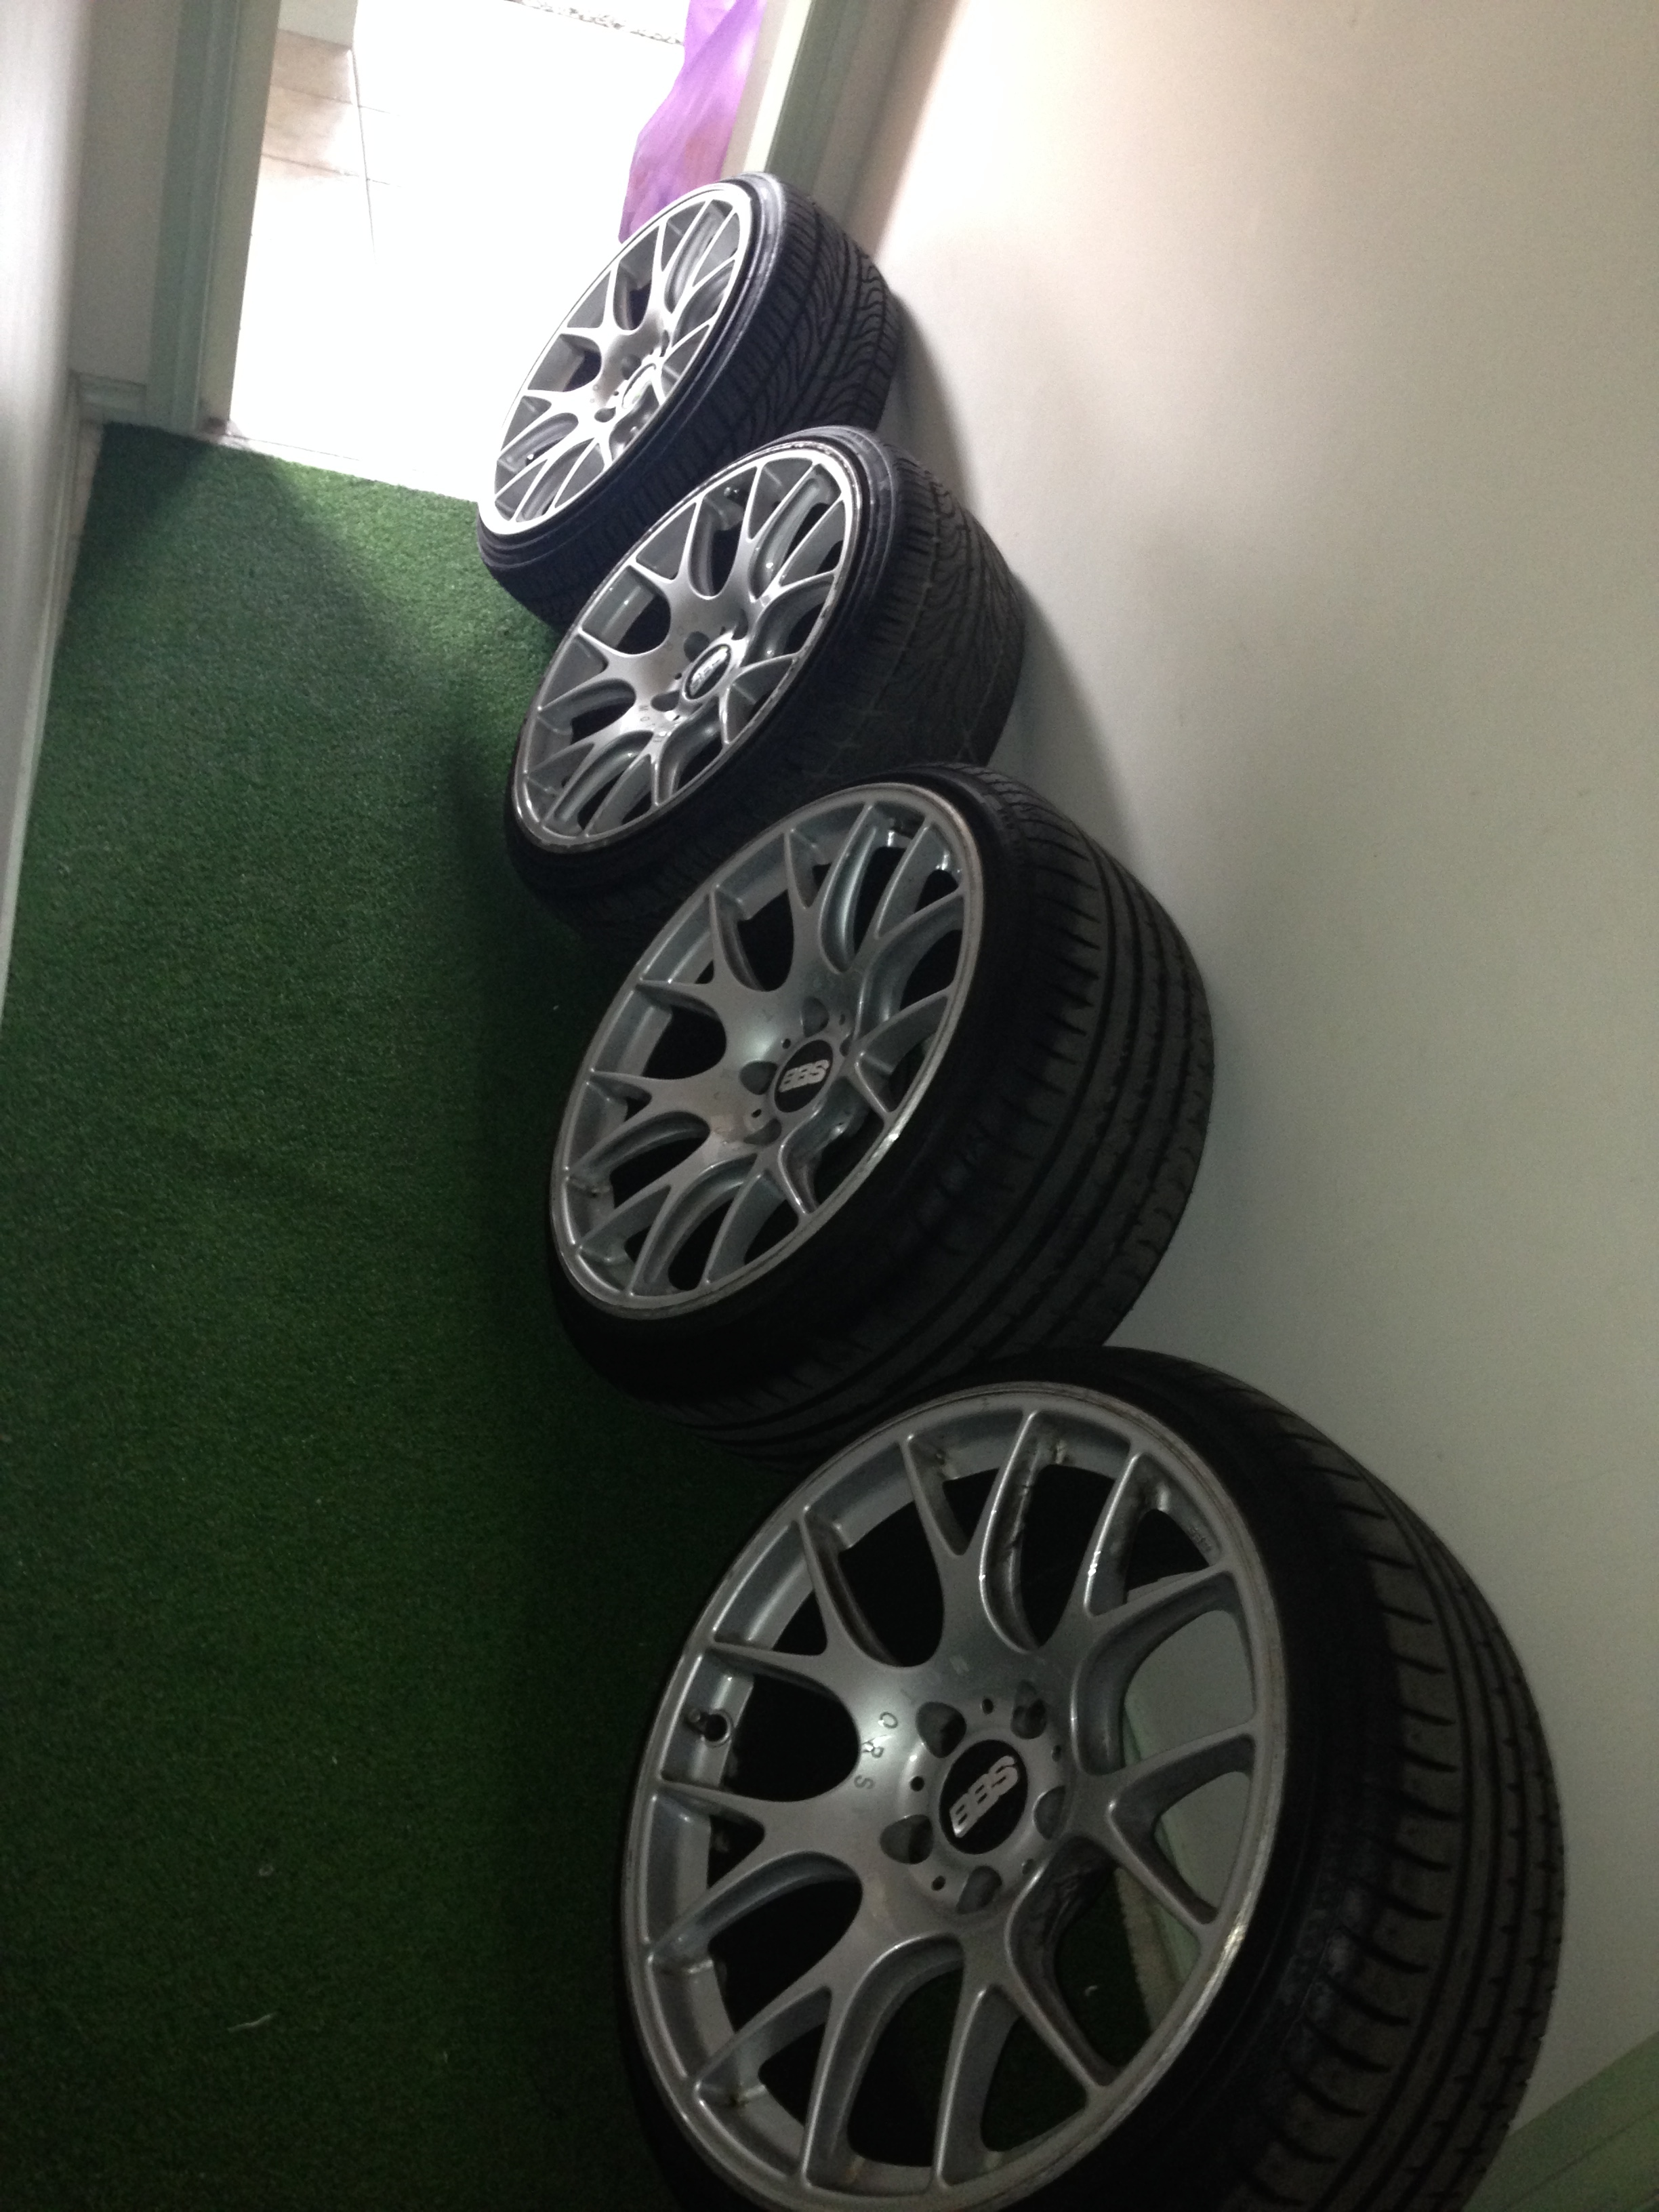 bbs chr 19 inch wheels for sale with tyres for bmw 2641132. Black Bedroom Furniture Sets. Home Design Ideas